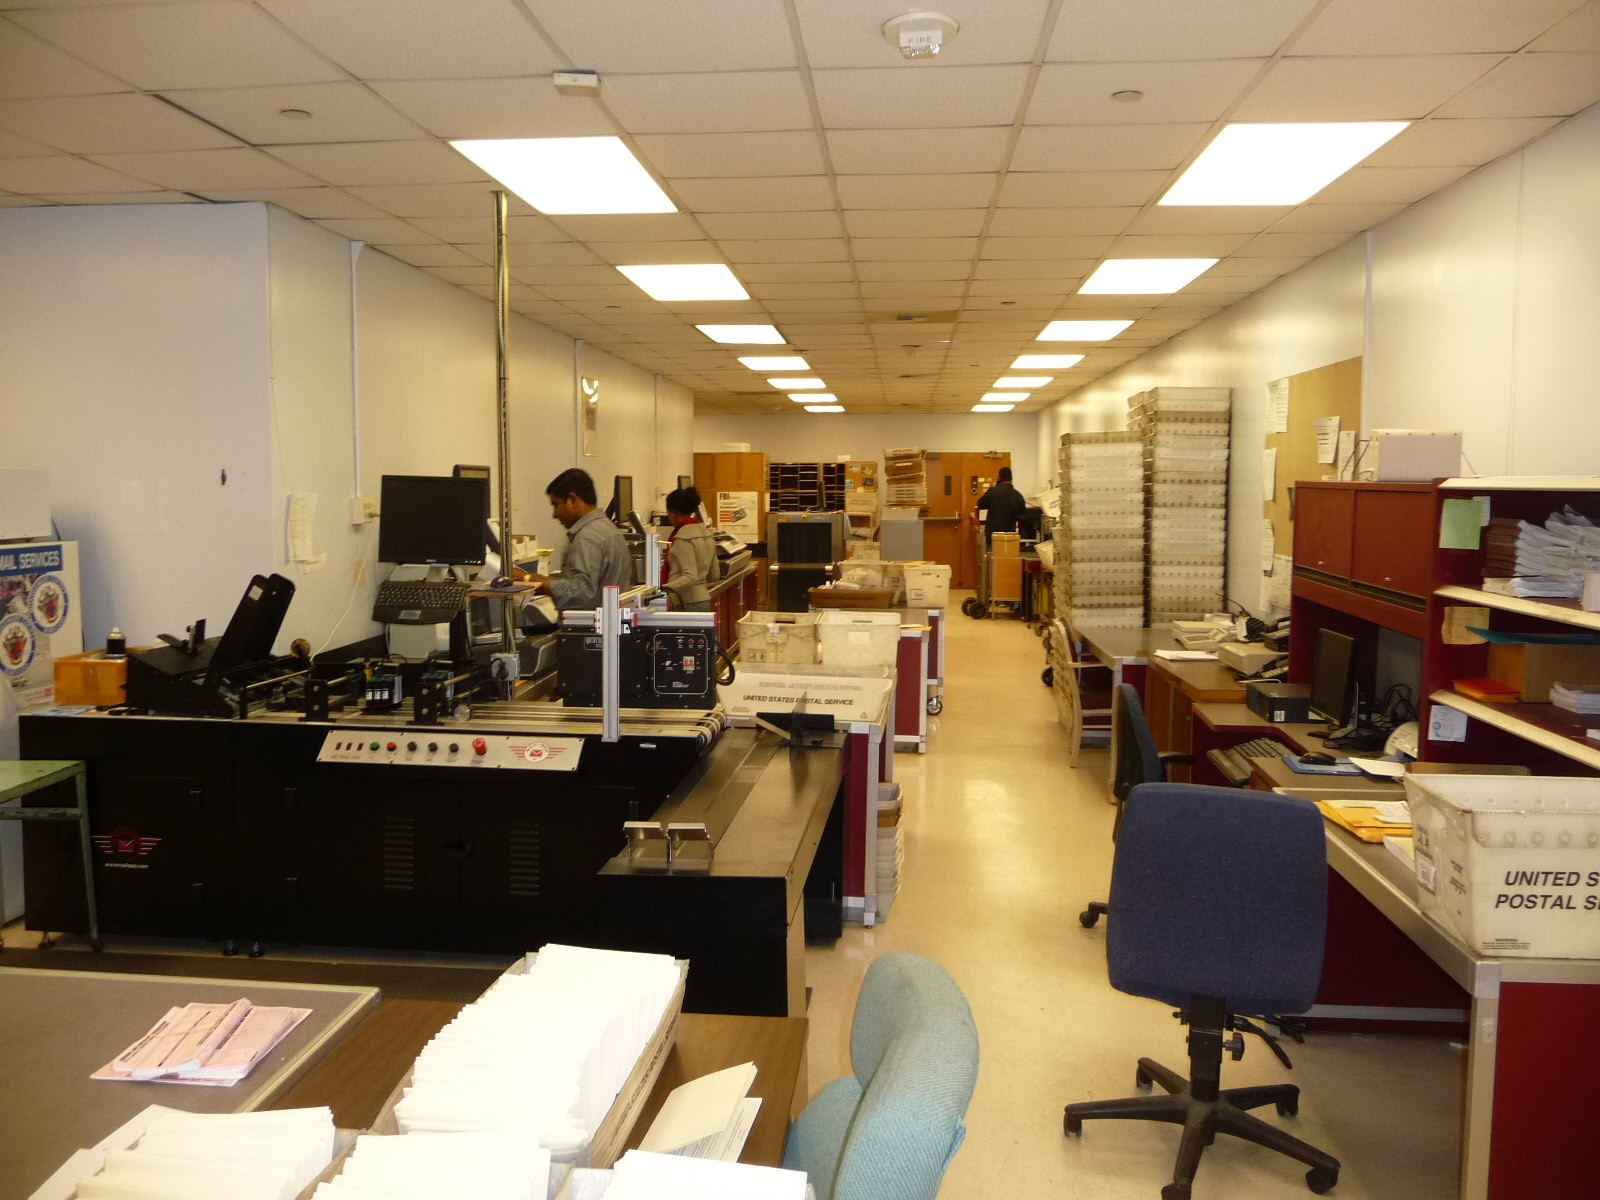 Mail room working image